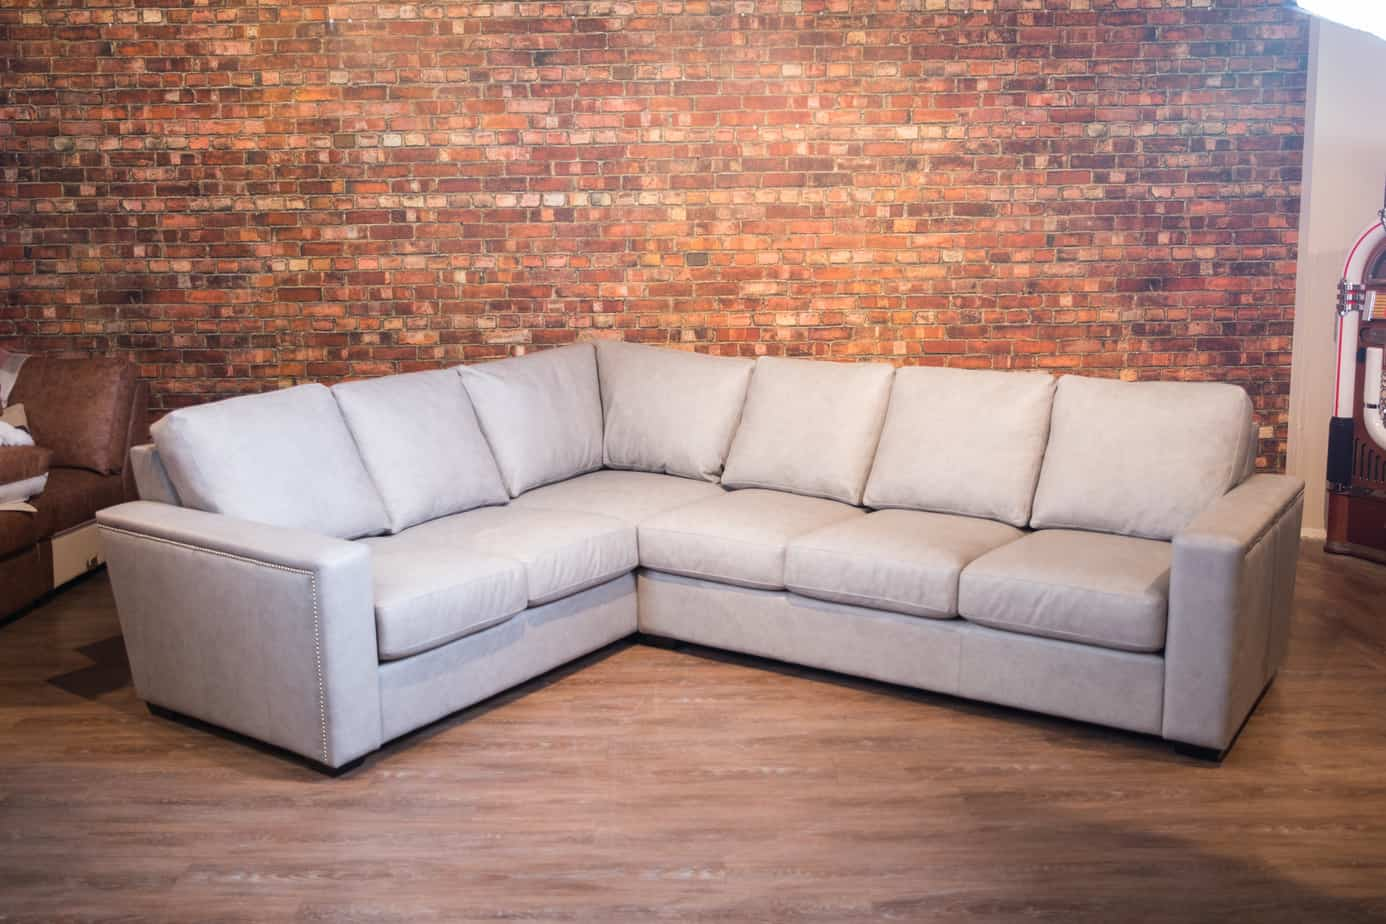 The Friuli Series Rhf Canada S Boss Leather Sofas And